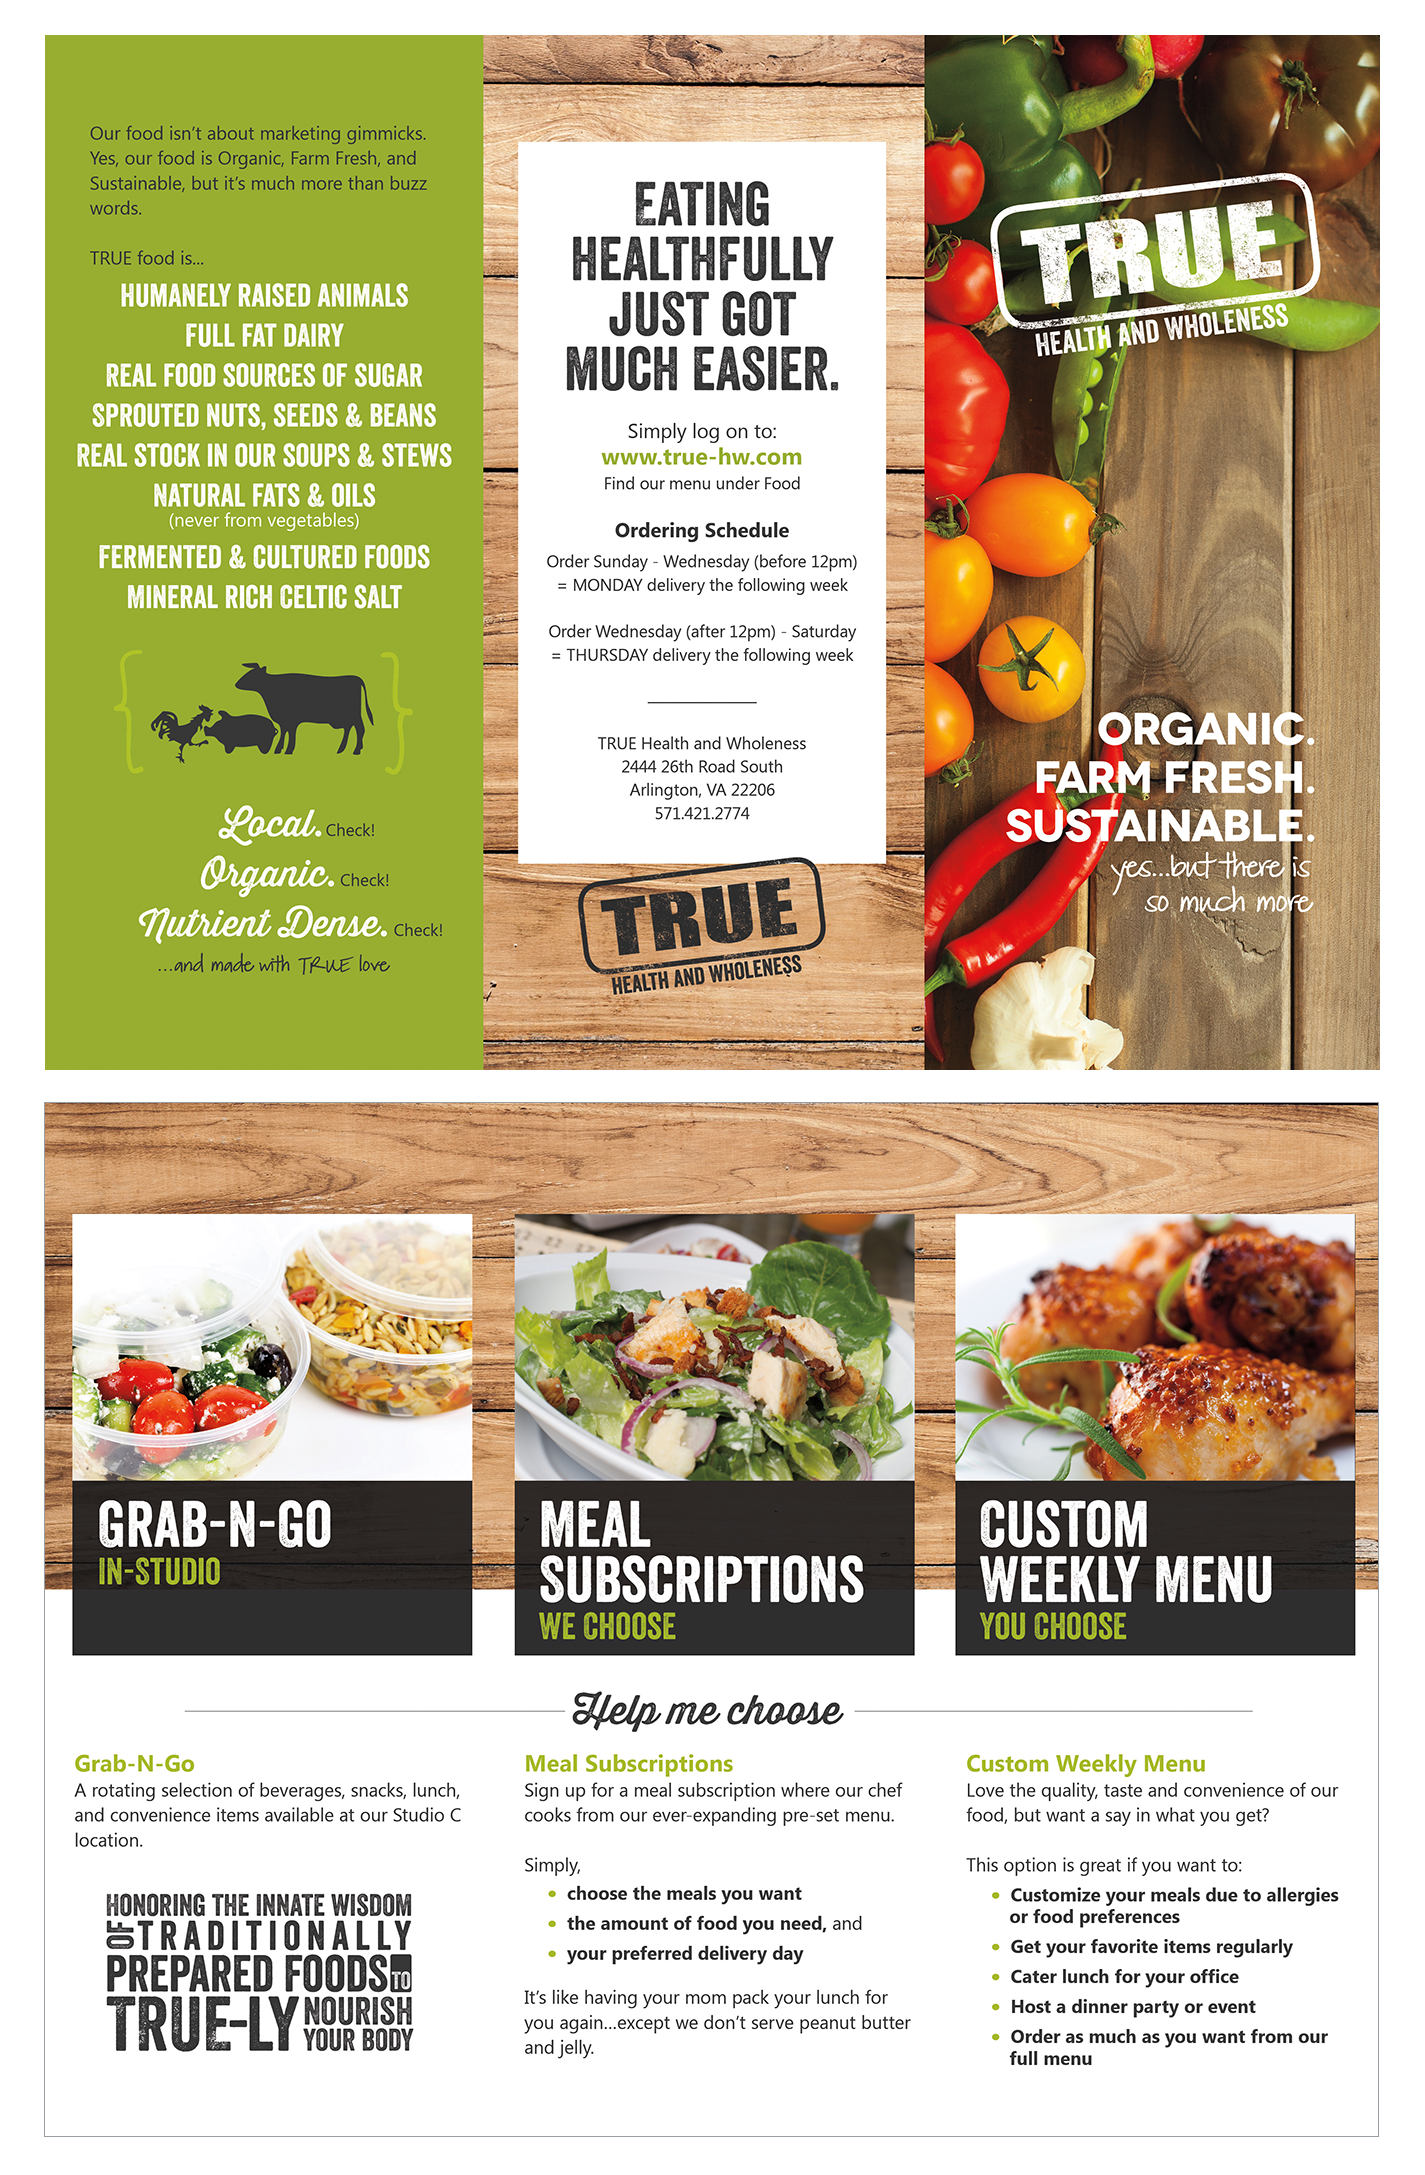 TriFold Brochure Design For True Health And Wholeness Food  Heth